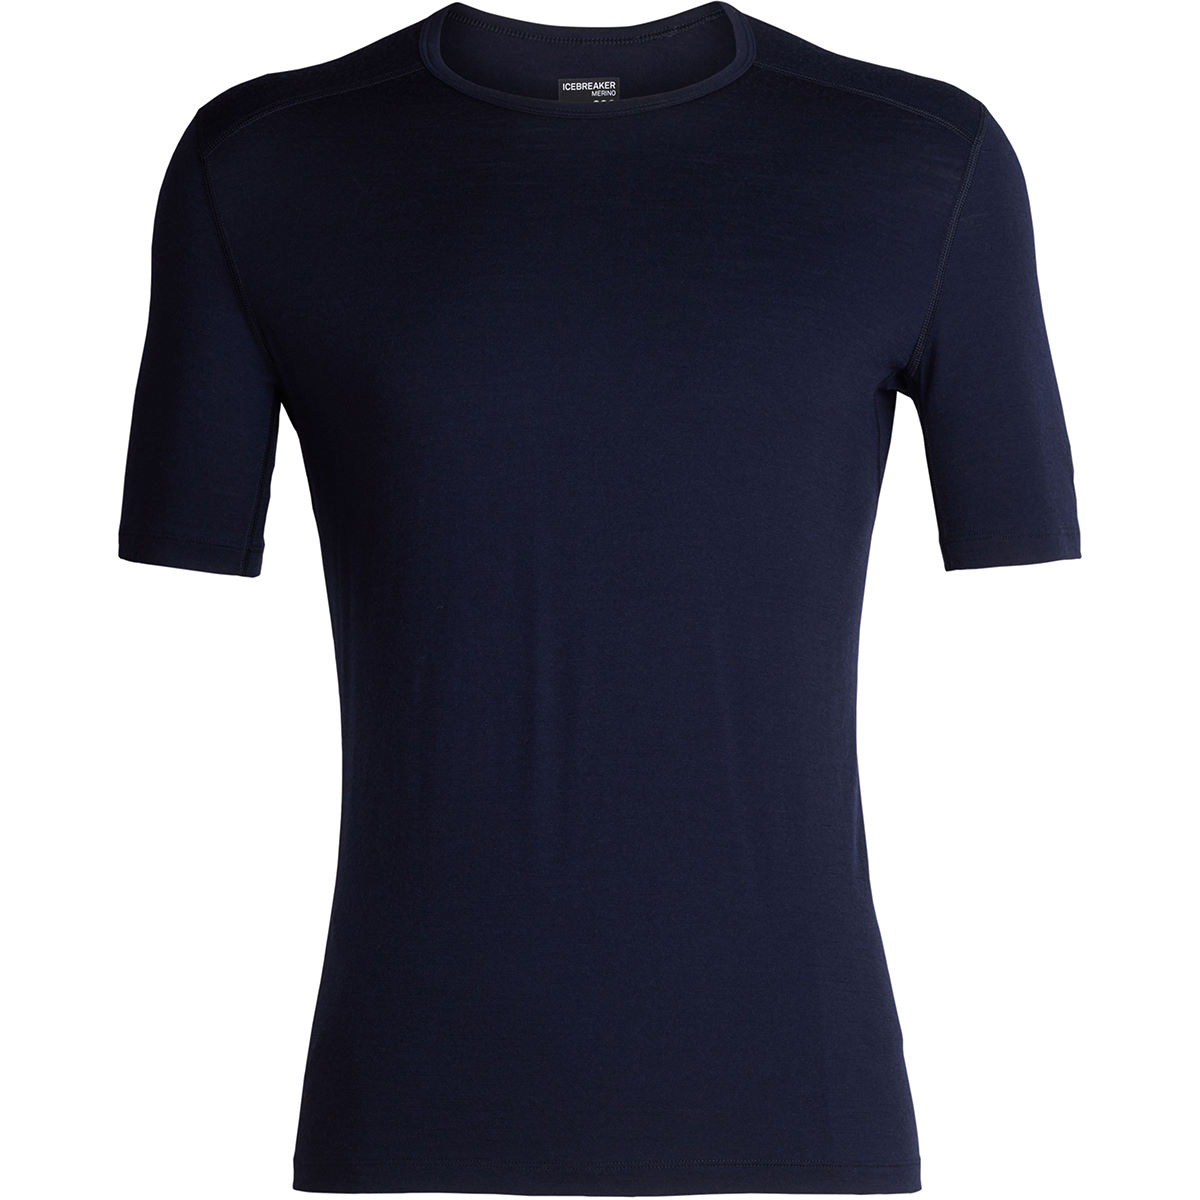 Icebreaker Icebreaker 200 Oasis Short Sleeve Crewe   Base Layers